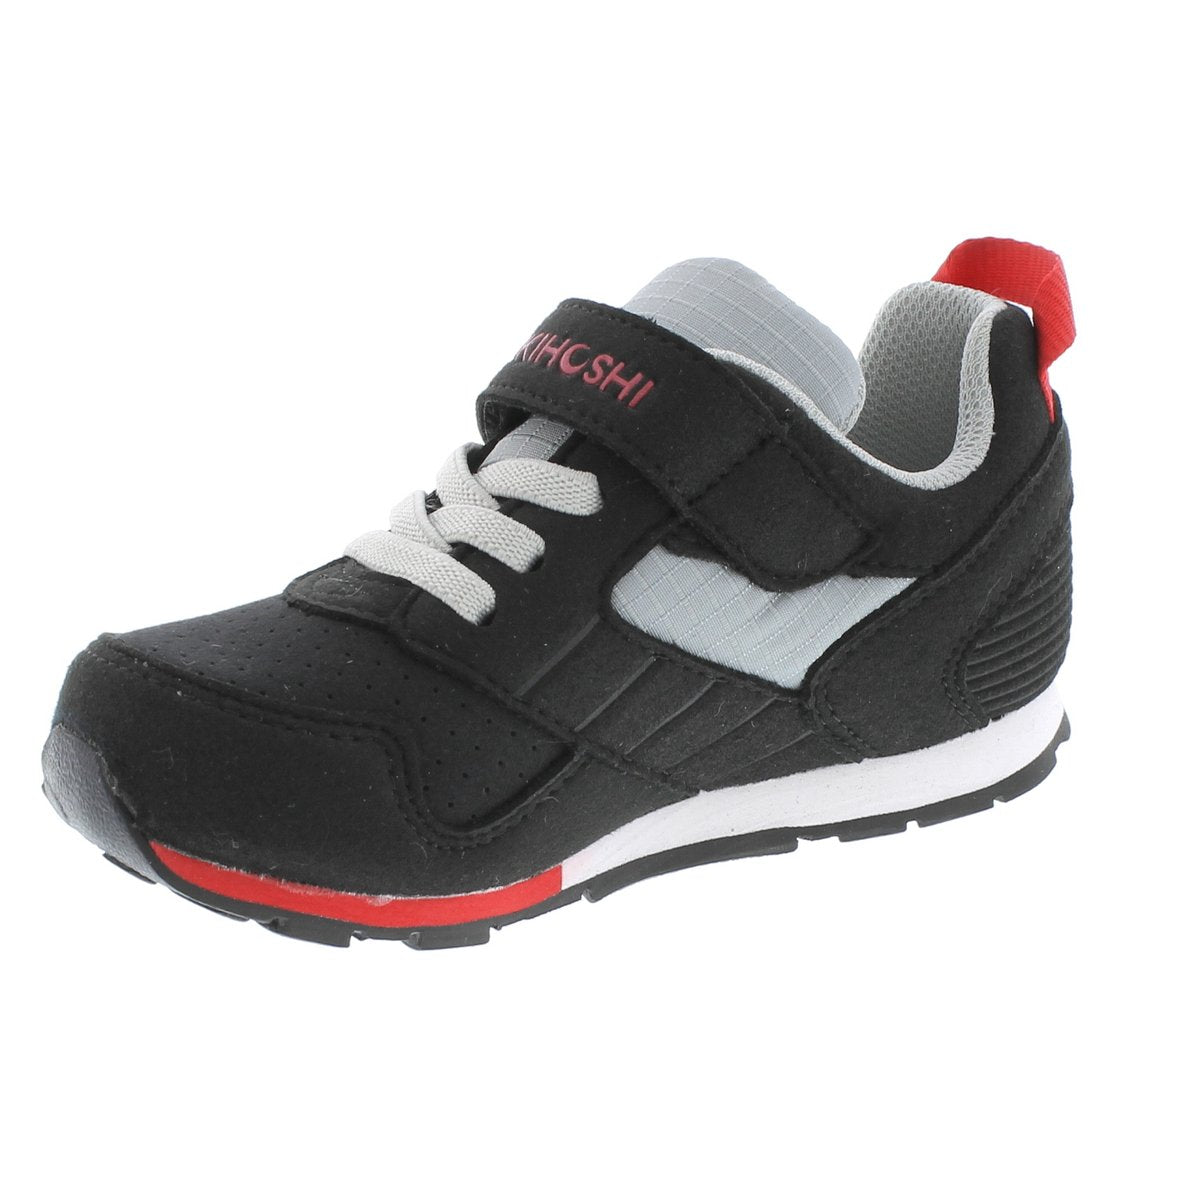 Child Tsukihoshi Racer Sneaker in Black/Red from the front view